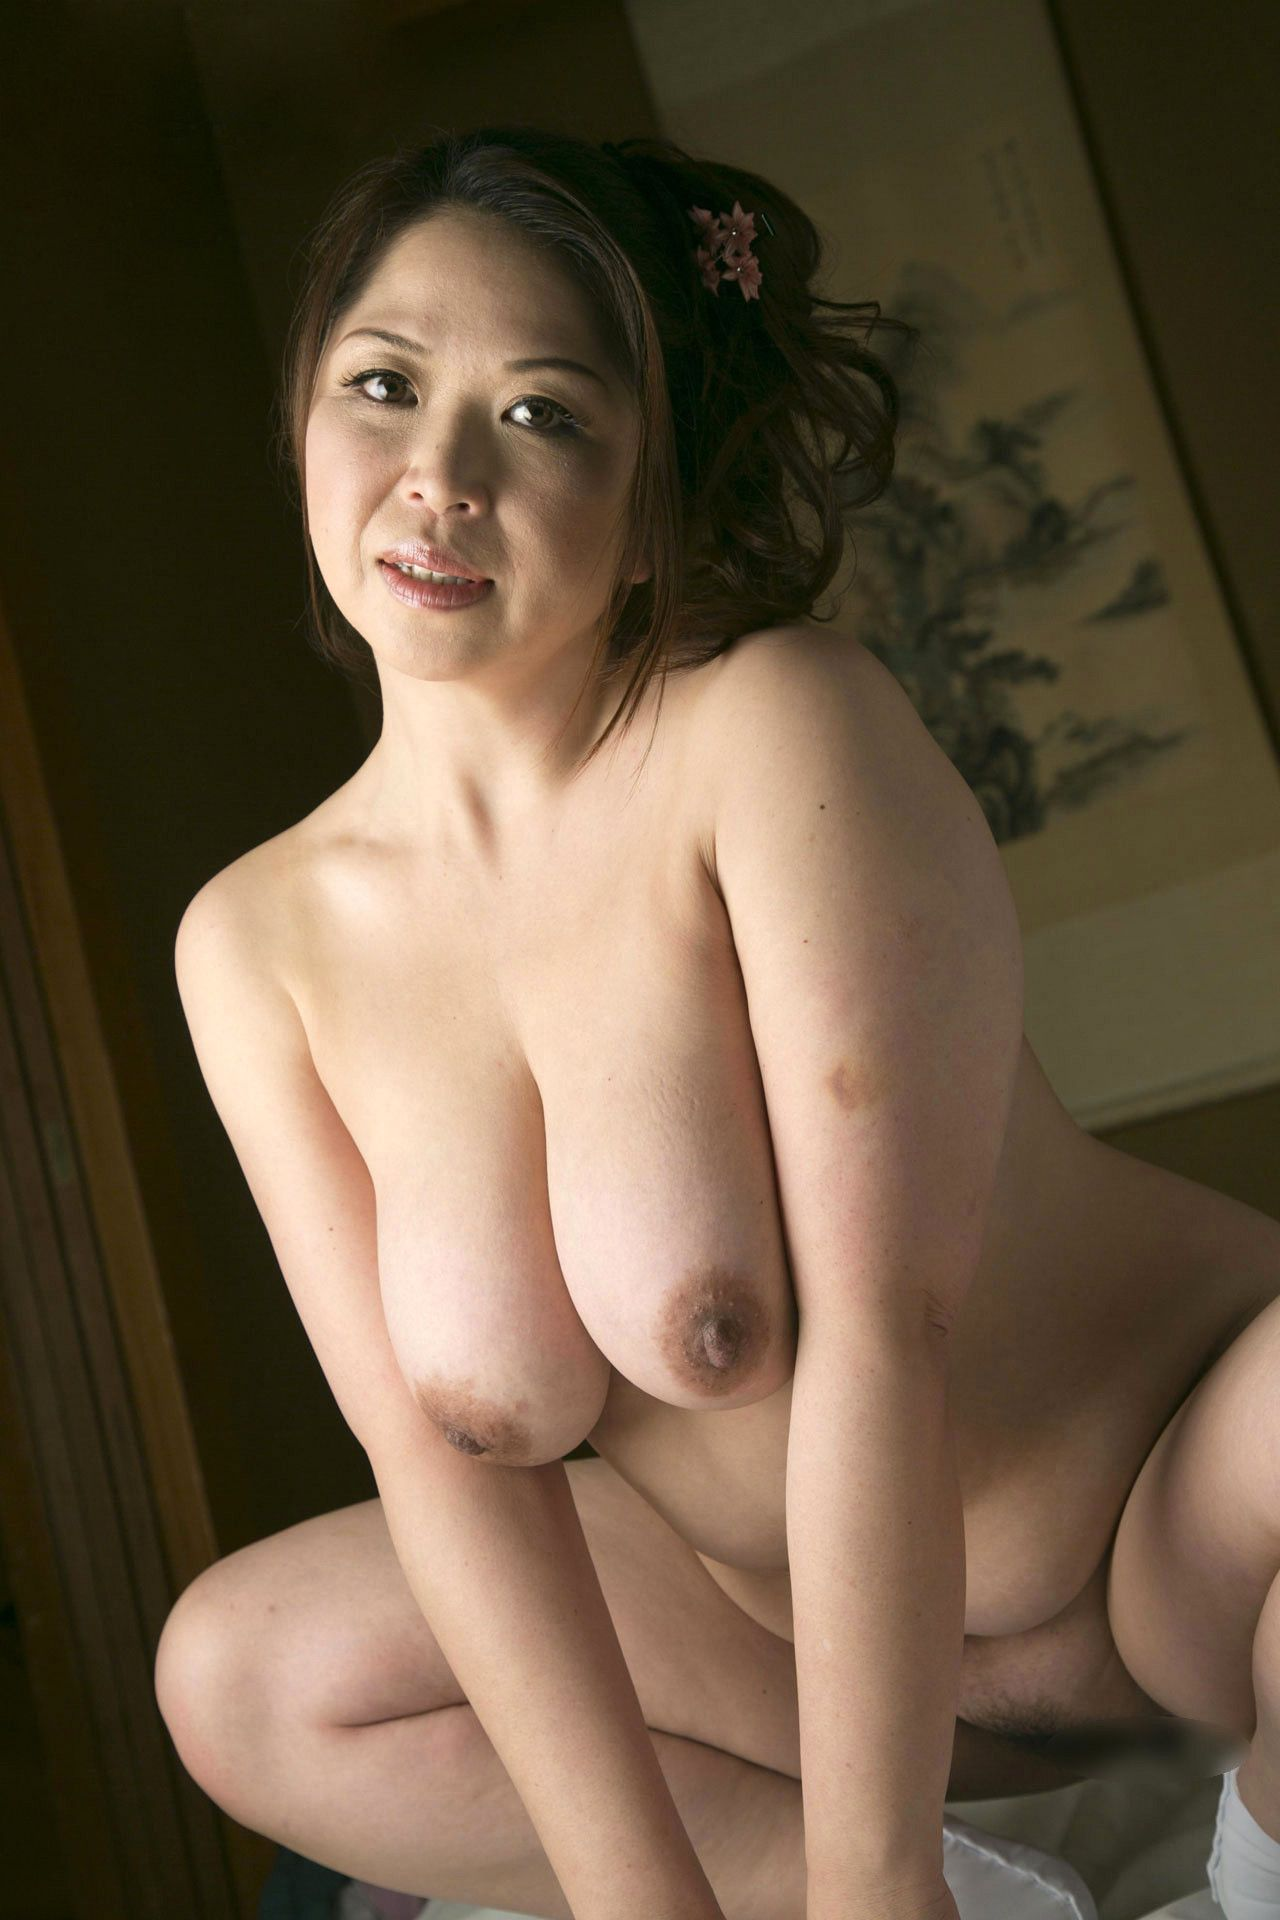 And mature japanese women naked